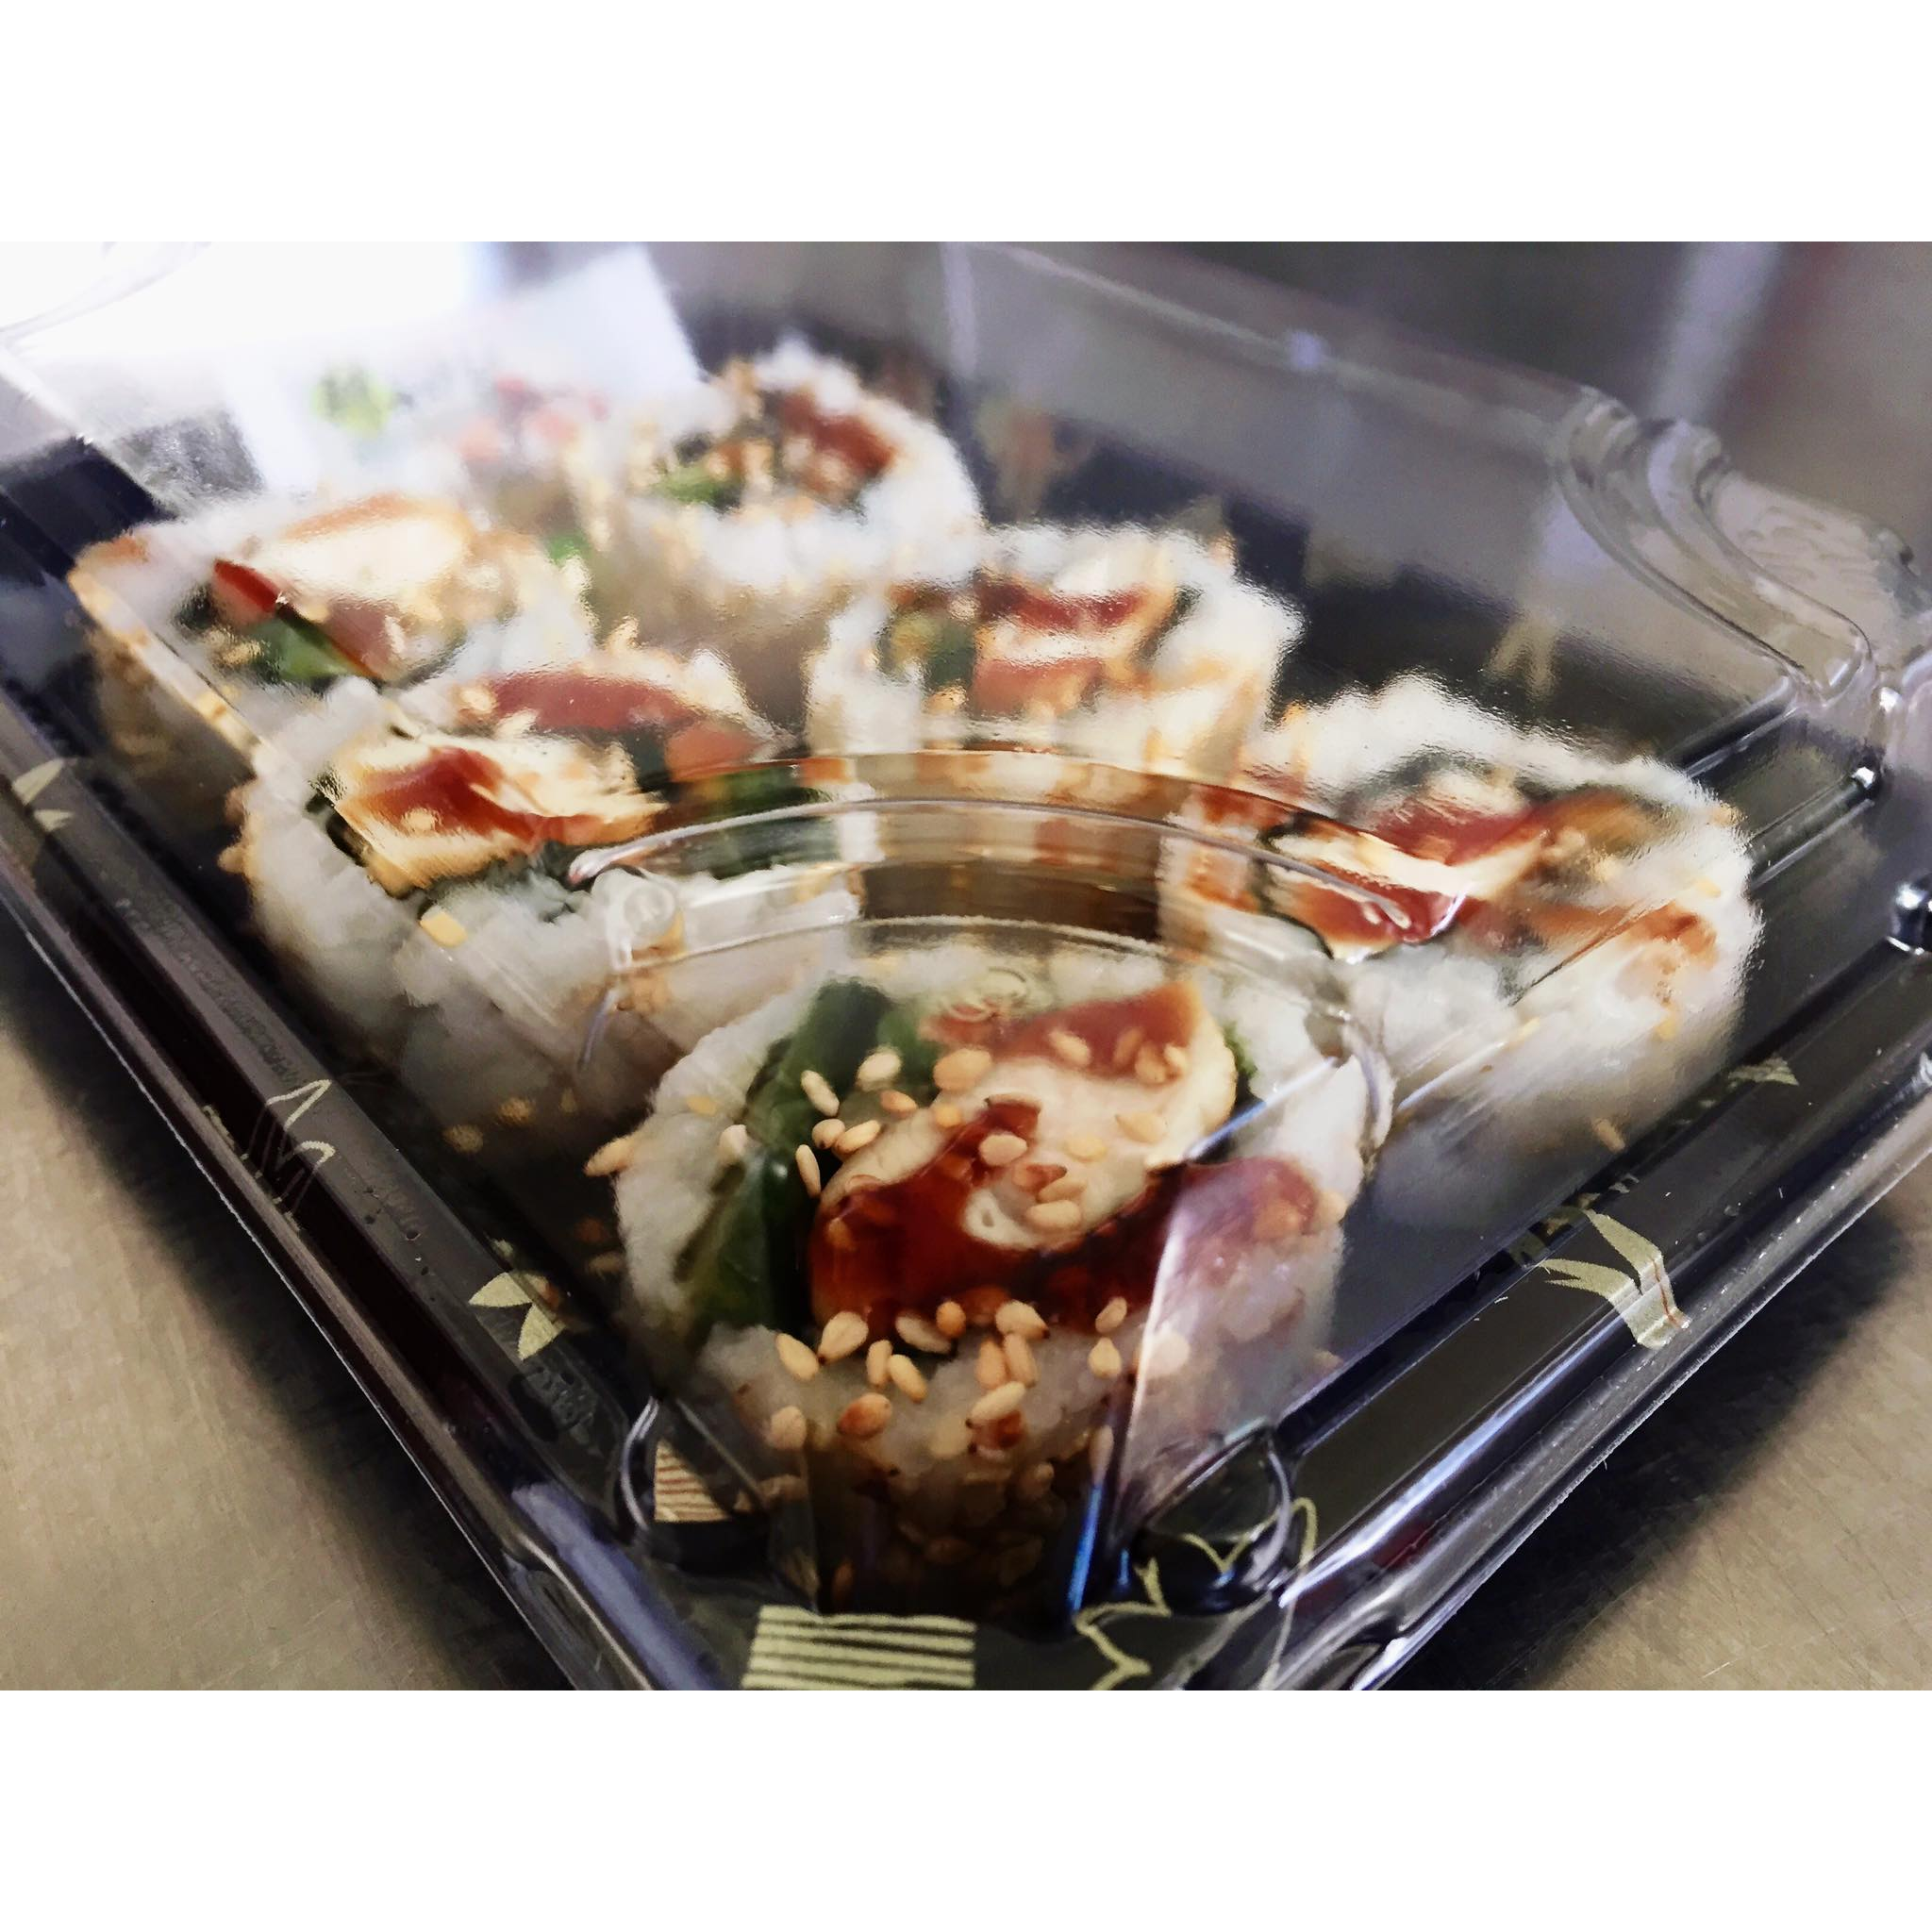 6 x Teriyaki Chicken Sushi Rolls - £5.50